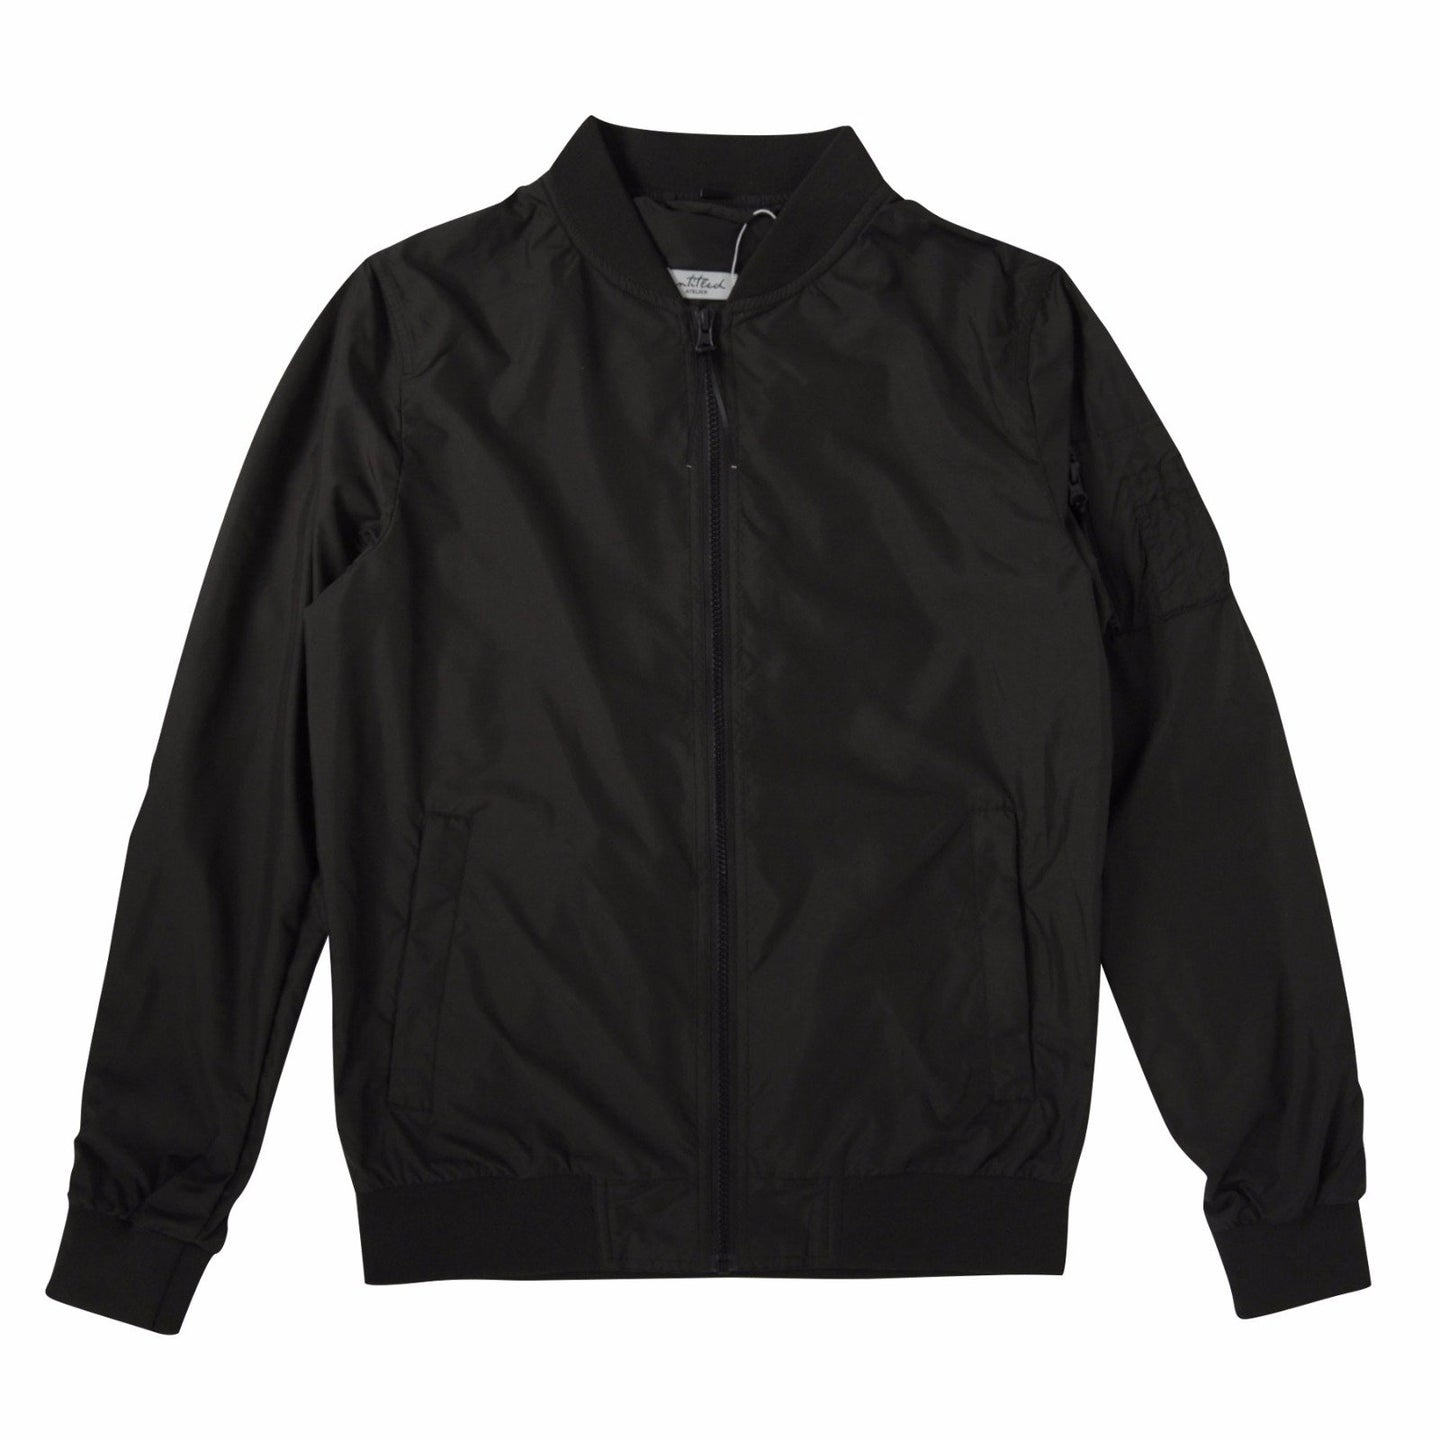 Untitled Atelier Bomber Jacket - Black